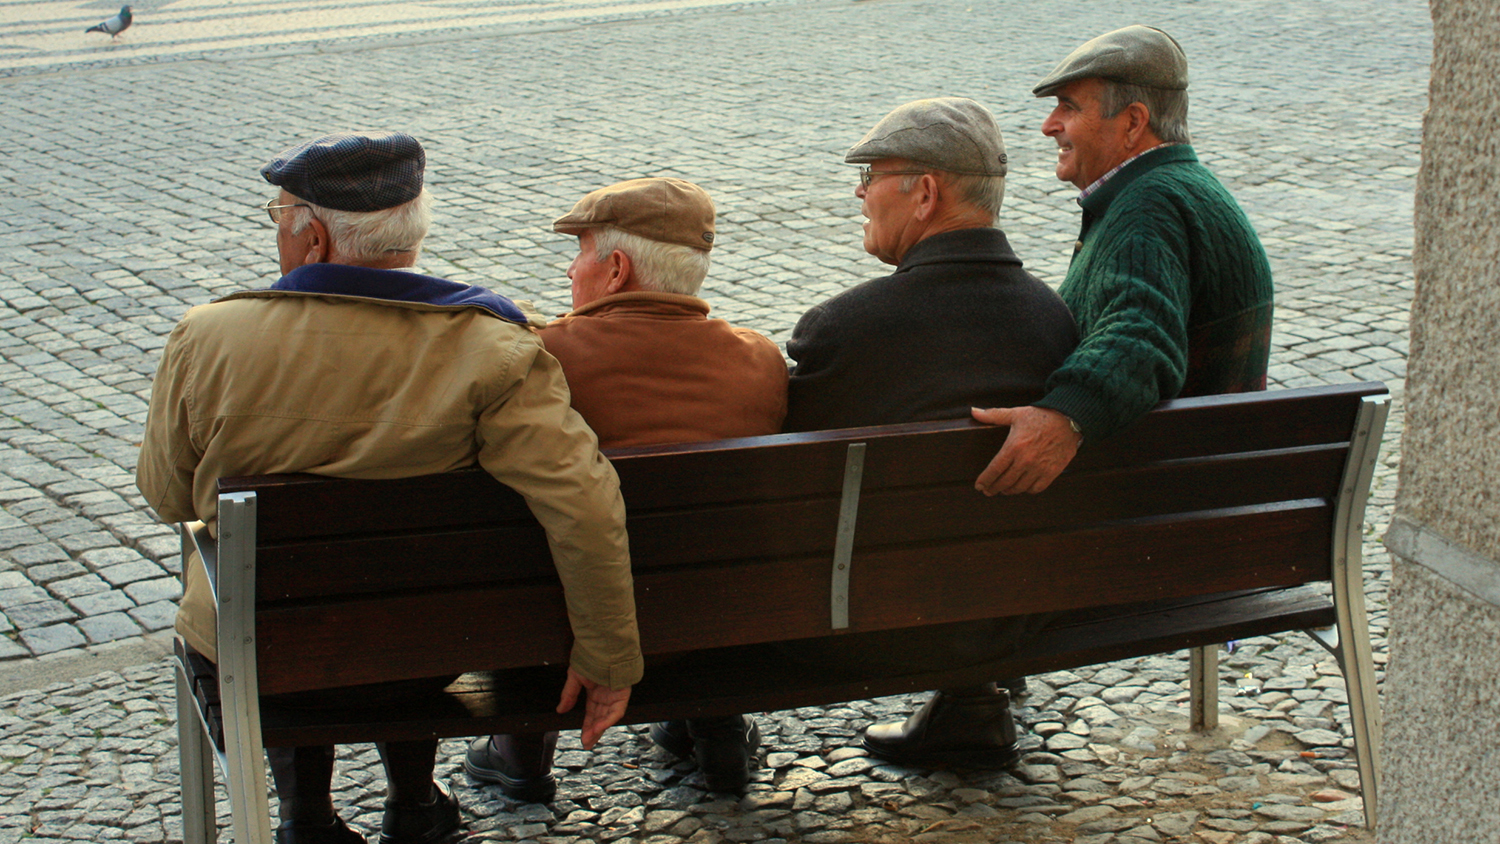 Four men sit on a bench.